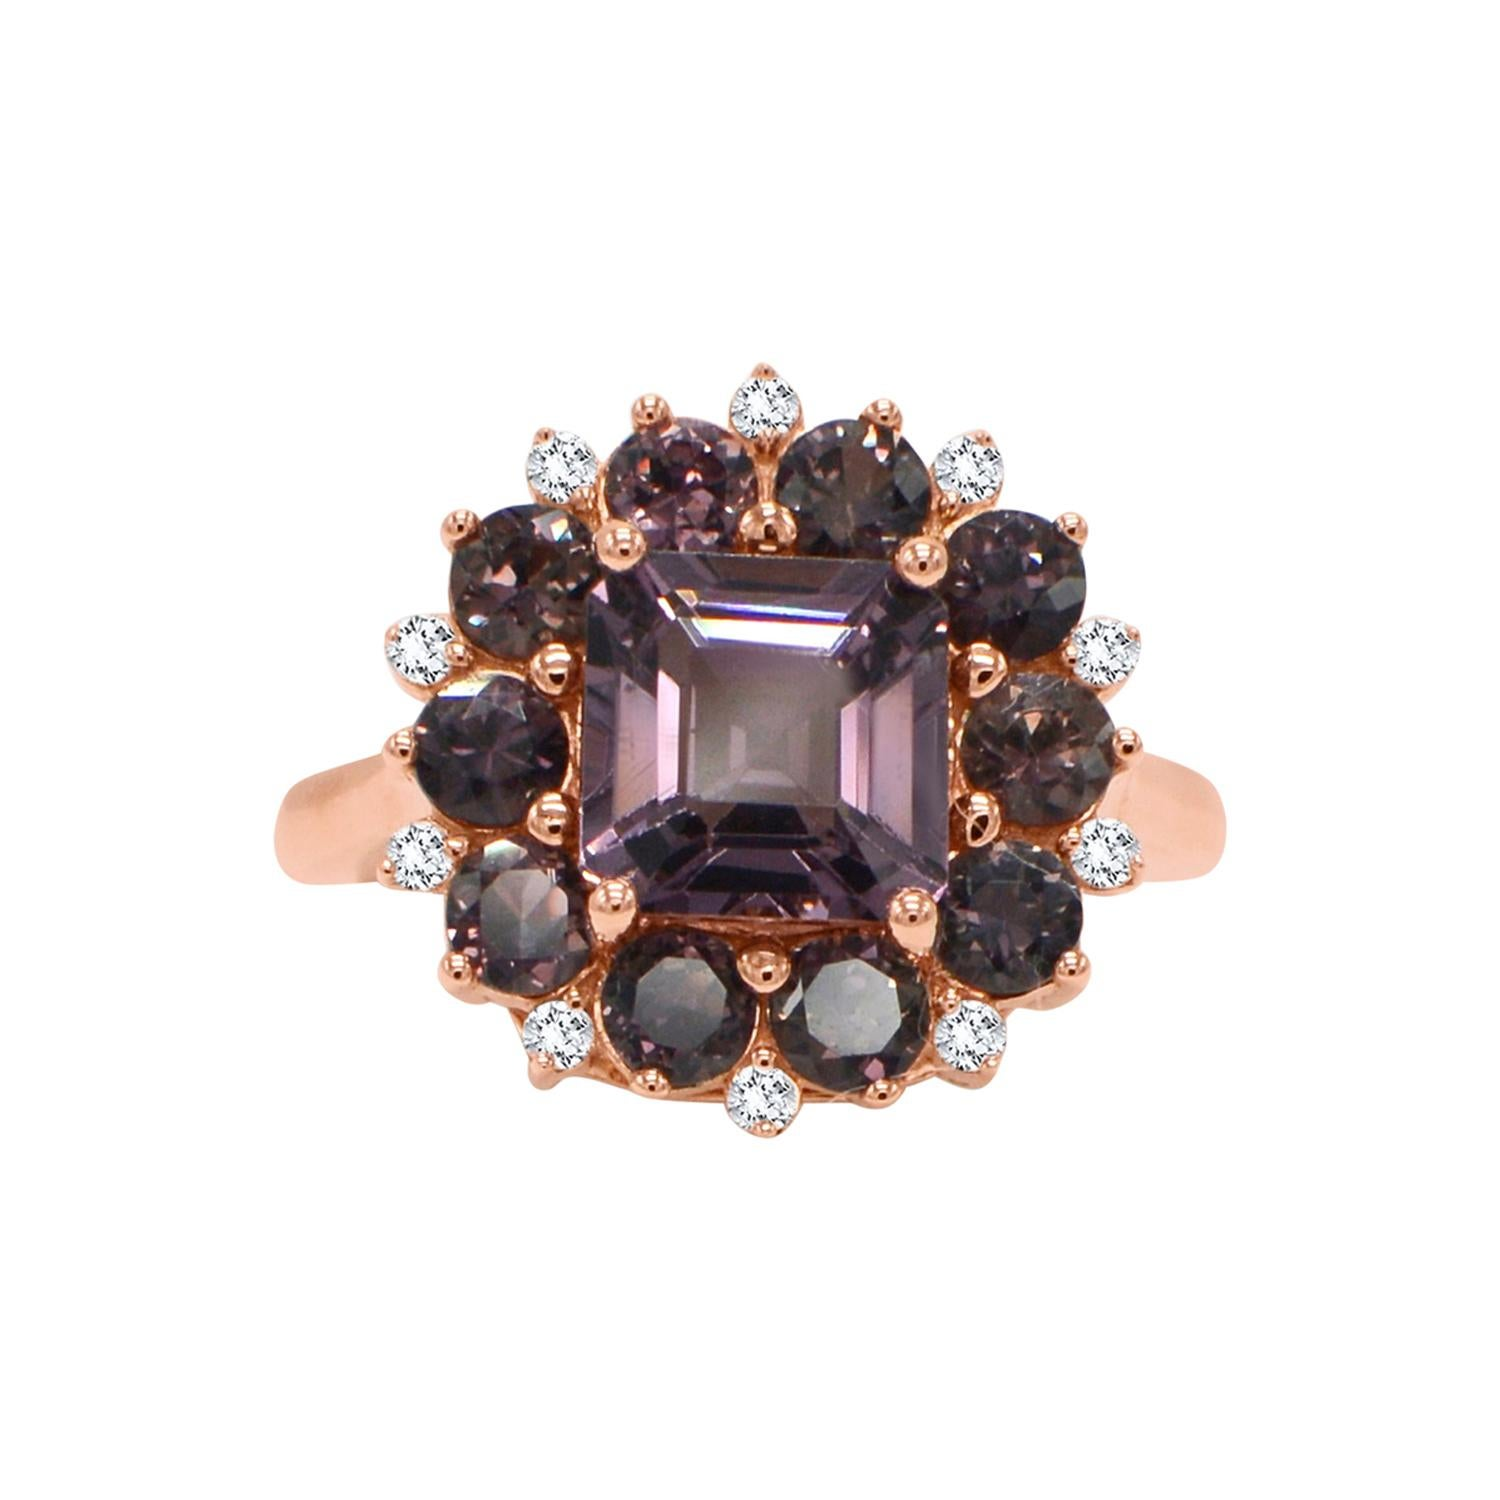 Montana Sapphire and Spinel Ring 14 Karat Rose Gold Square Shape Spinel